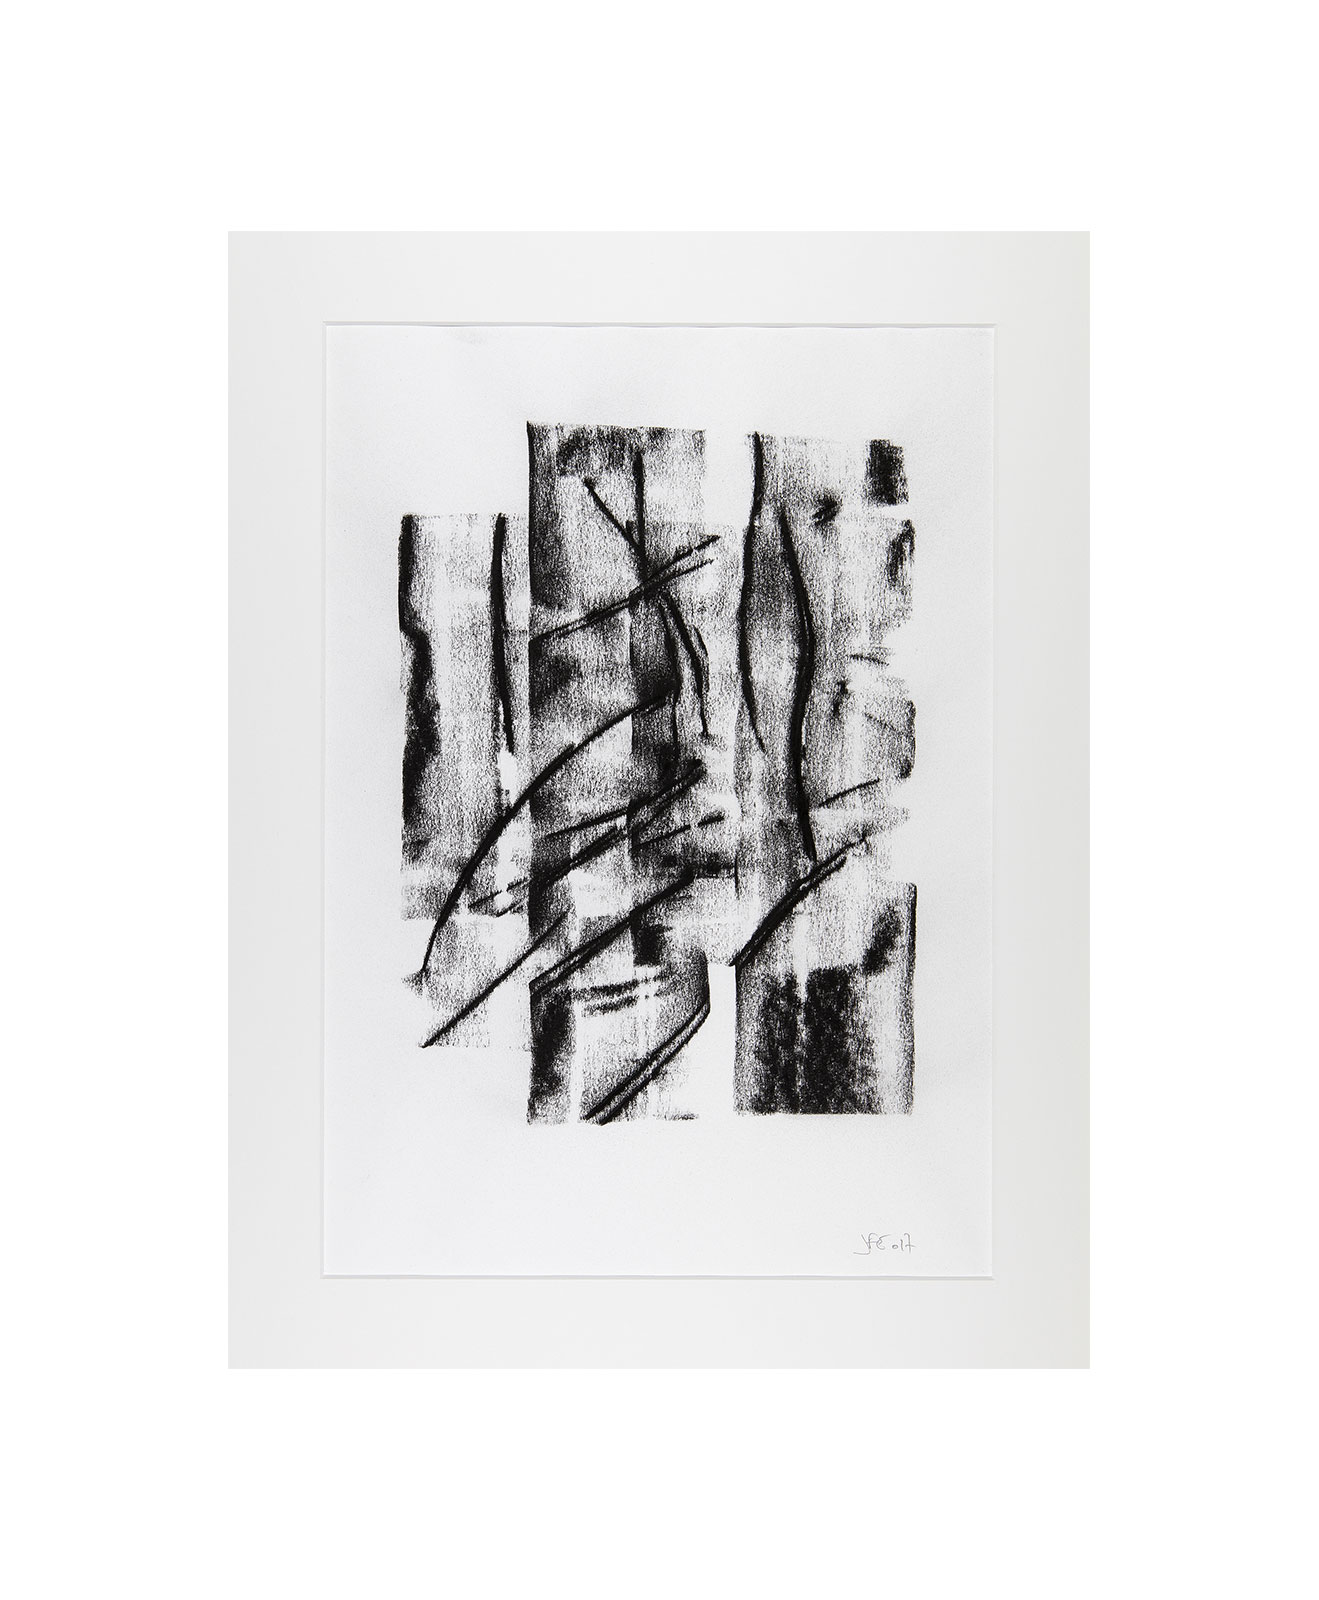 Cha 1.21, Charcoal on paper, black and white artwork, drawing, jf escande, contemporary art